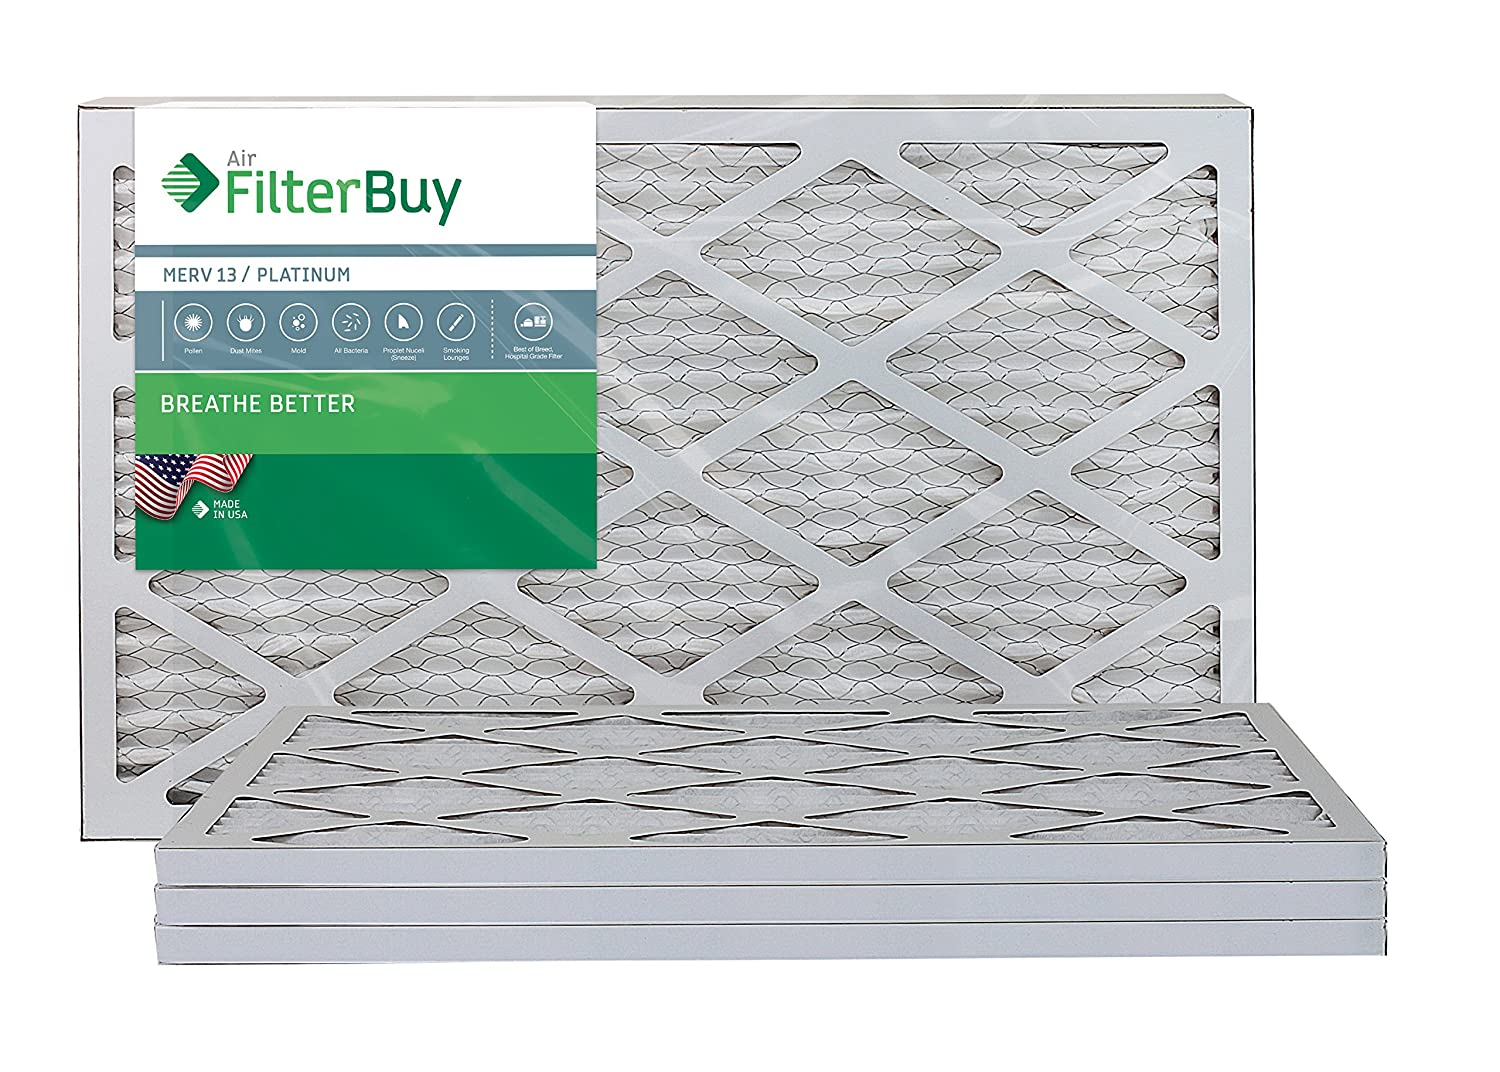 FilterBuy 14x24x1 MERV 13 Pleated AC Furnace Air Filter, (Pack of 4 Filters), 14x24x1 – Platinum